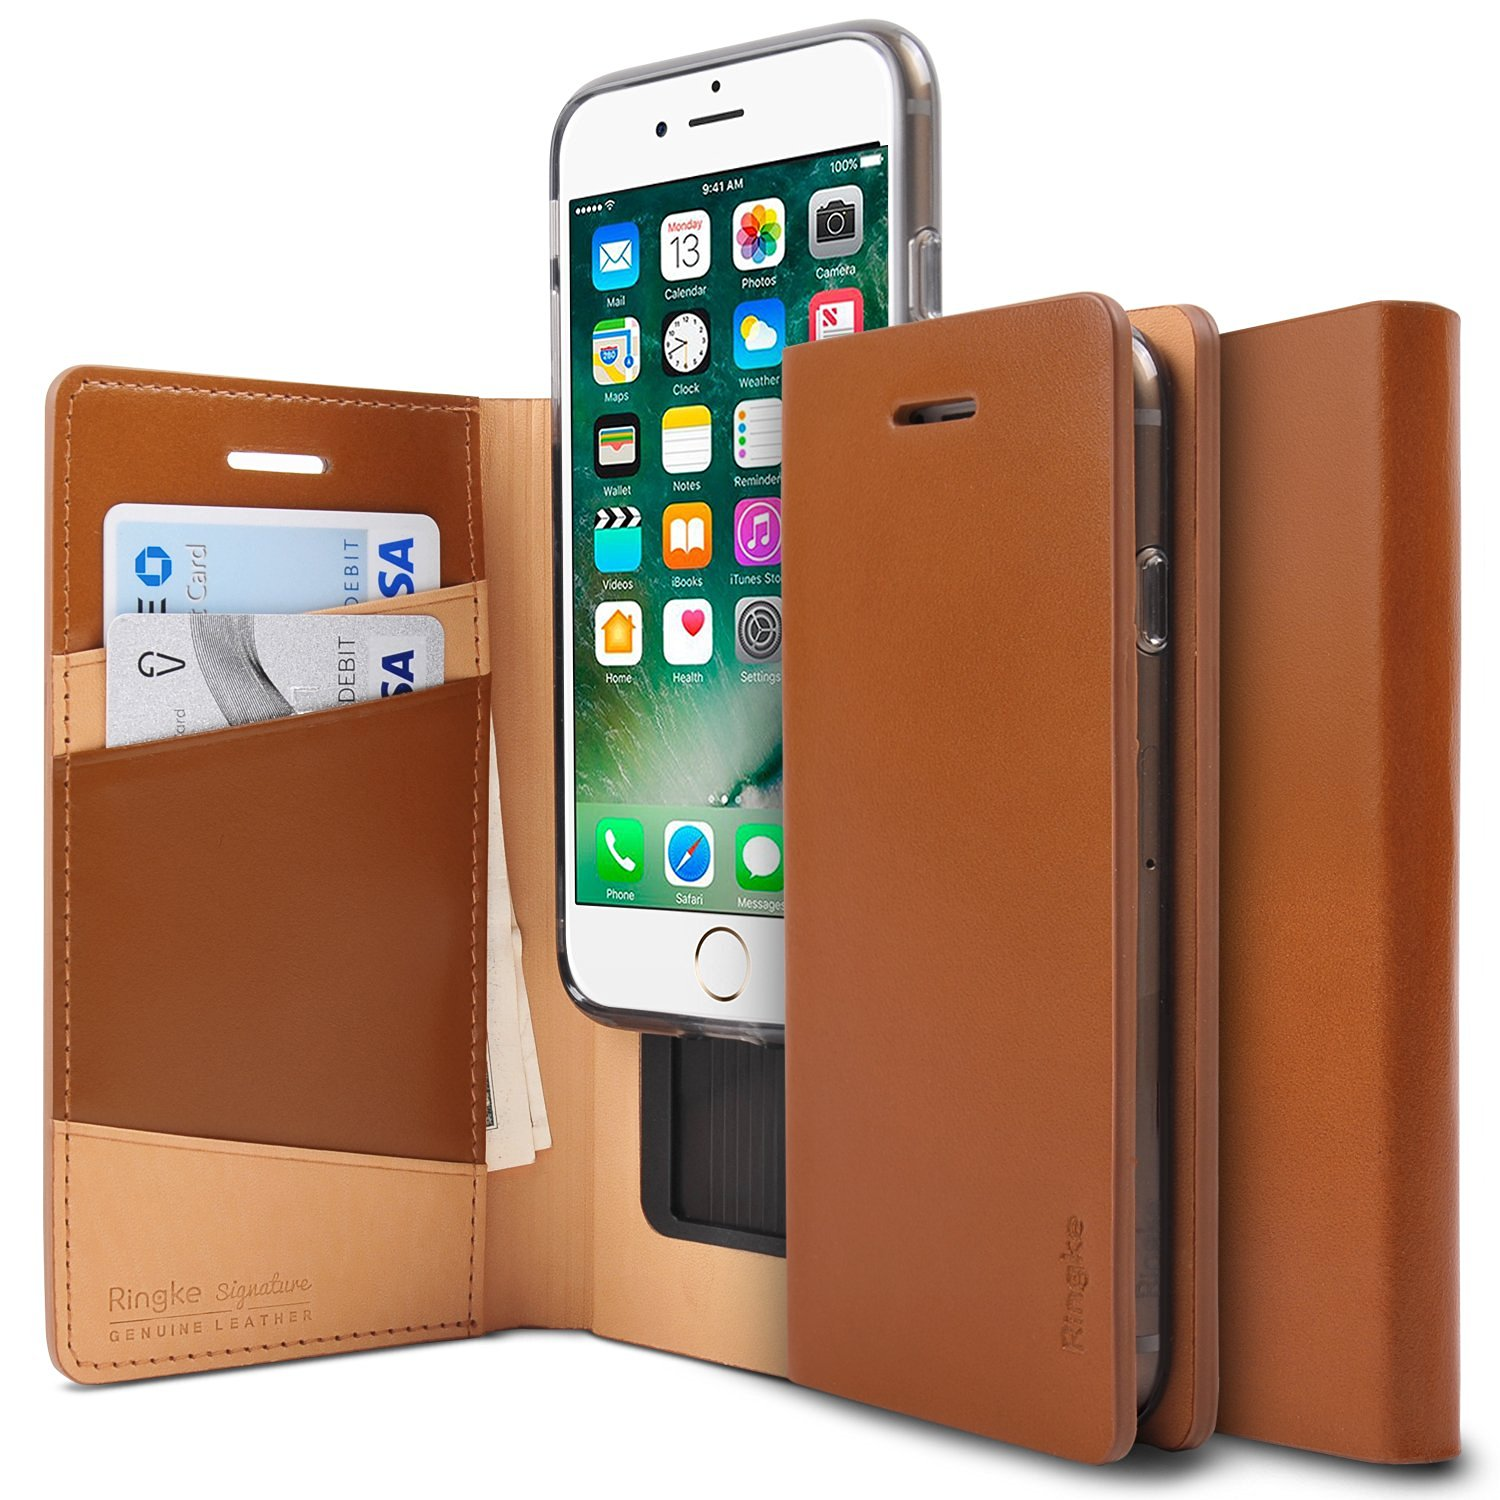 Rearth Ringke Signature Leather Case iPhone 7 Plus - Brown